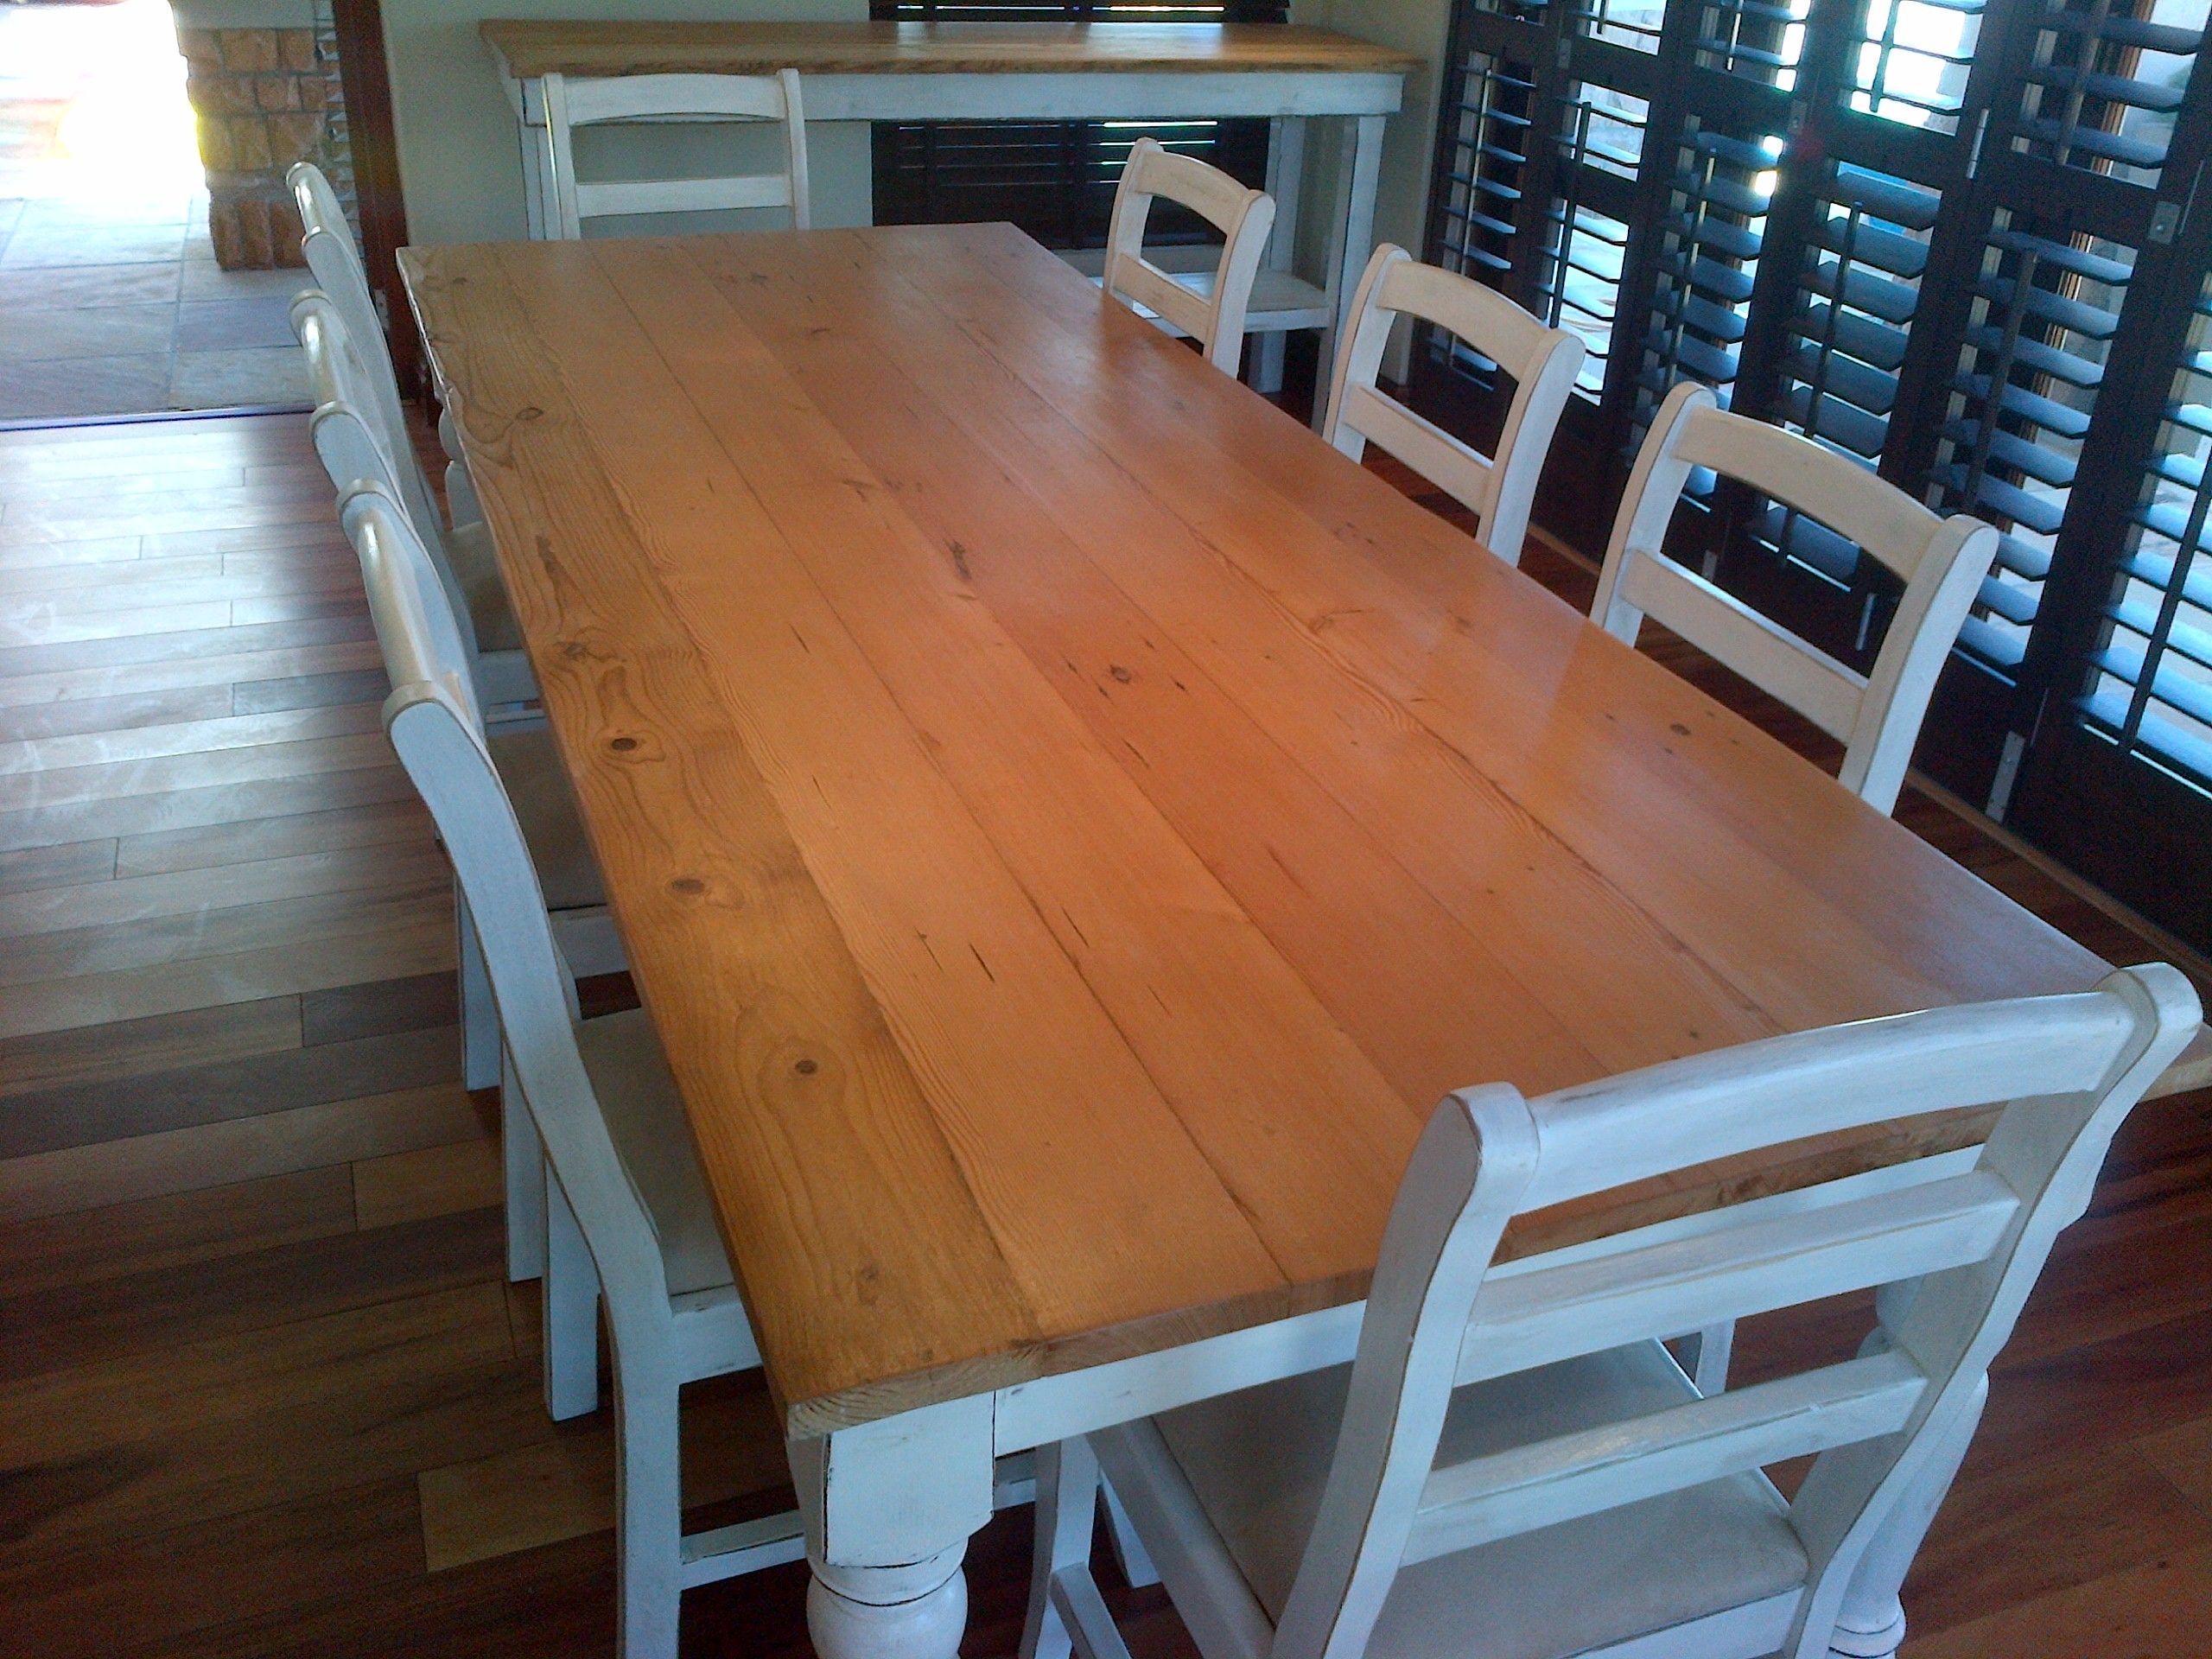 Rustic Dining Room Table Seats 10 Recycled And Reclaimed Wood With Natural Legs Oregon Pine Outdoors